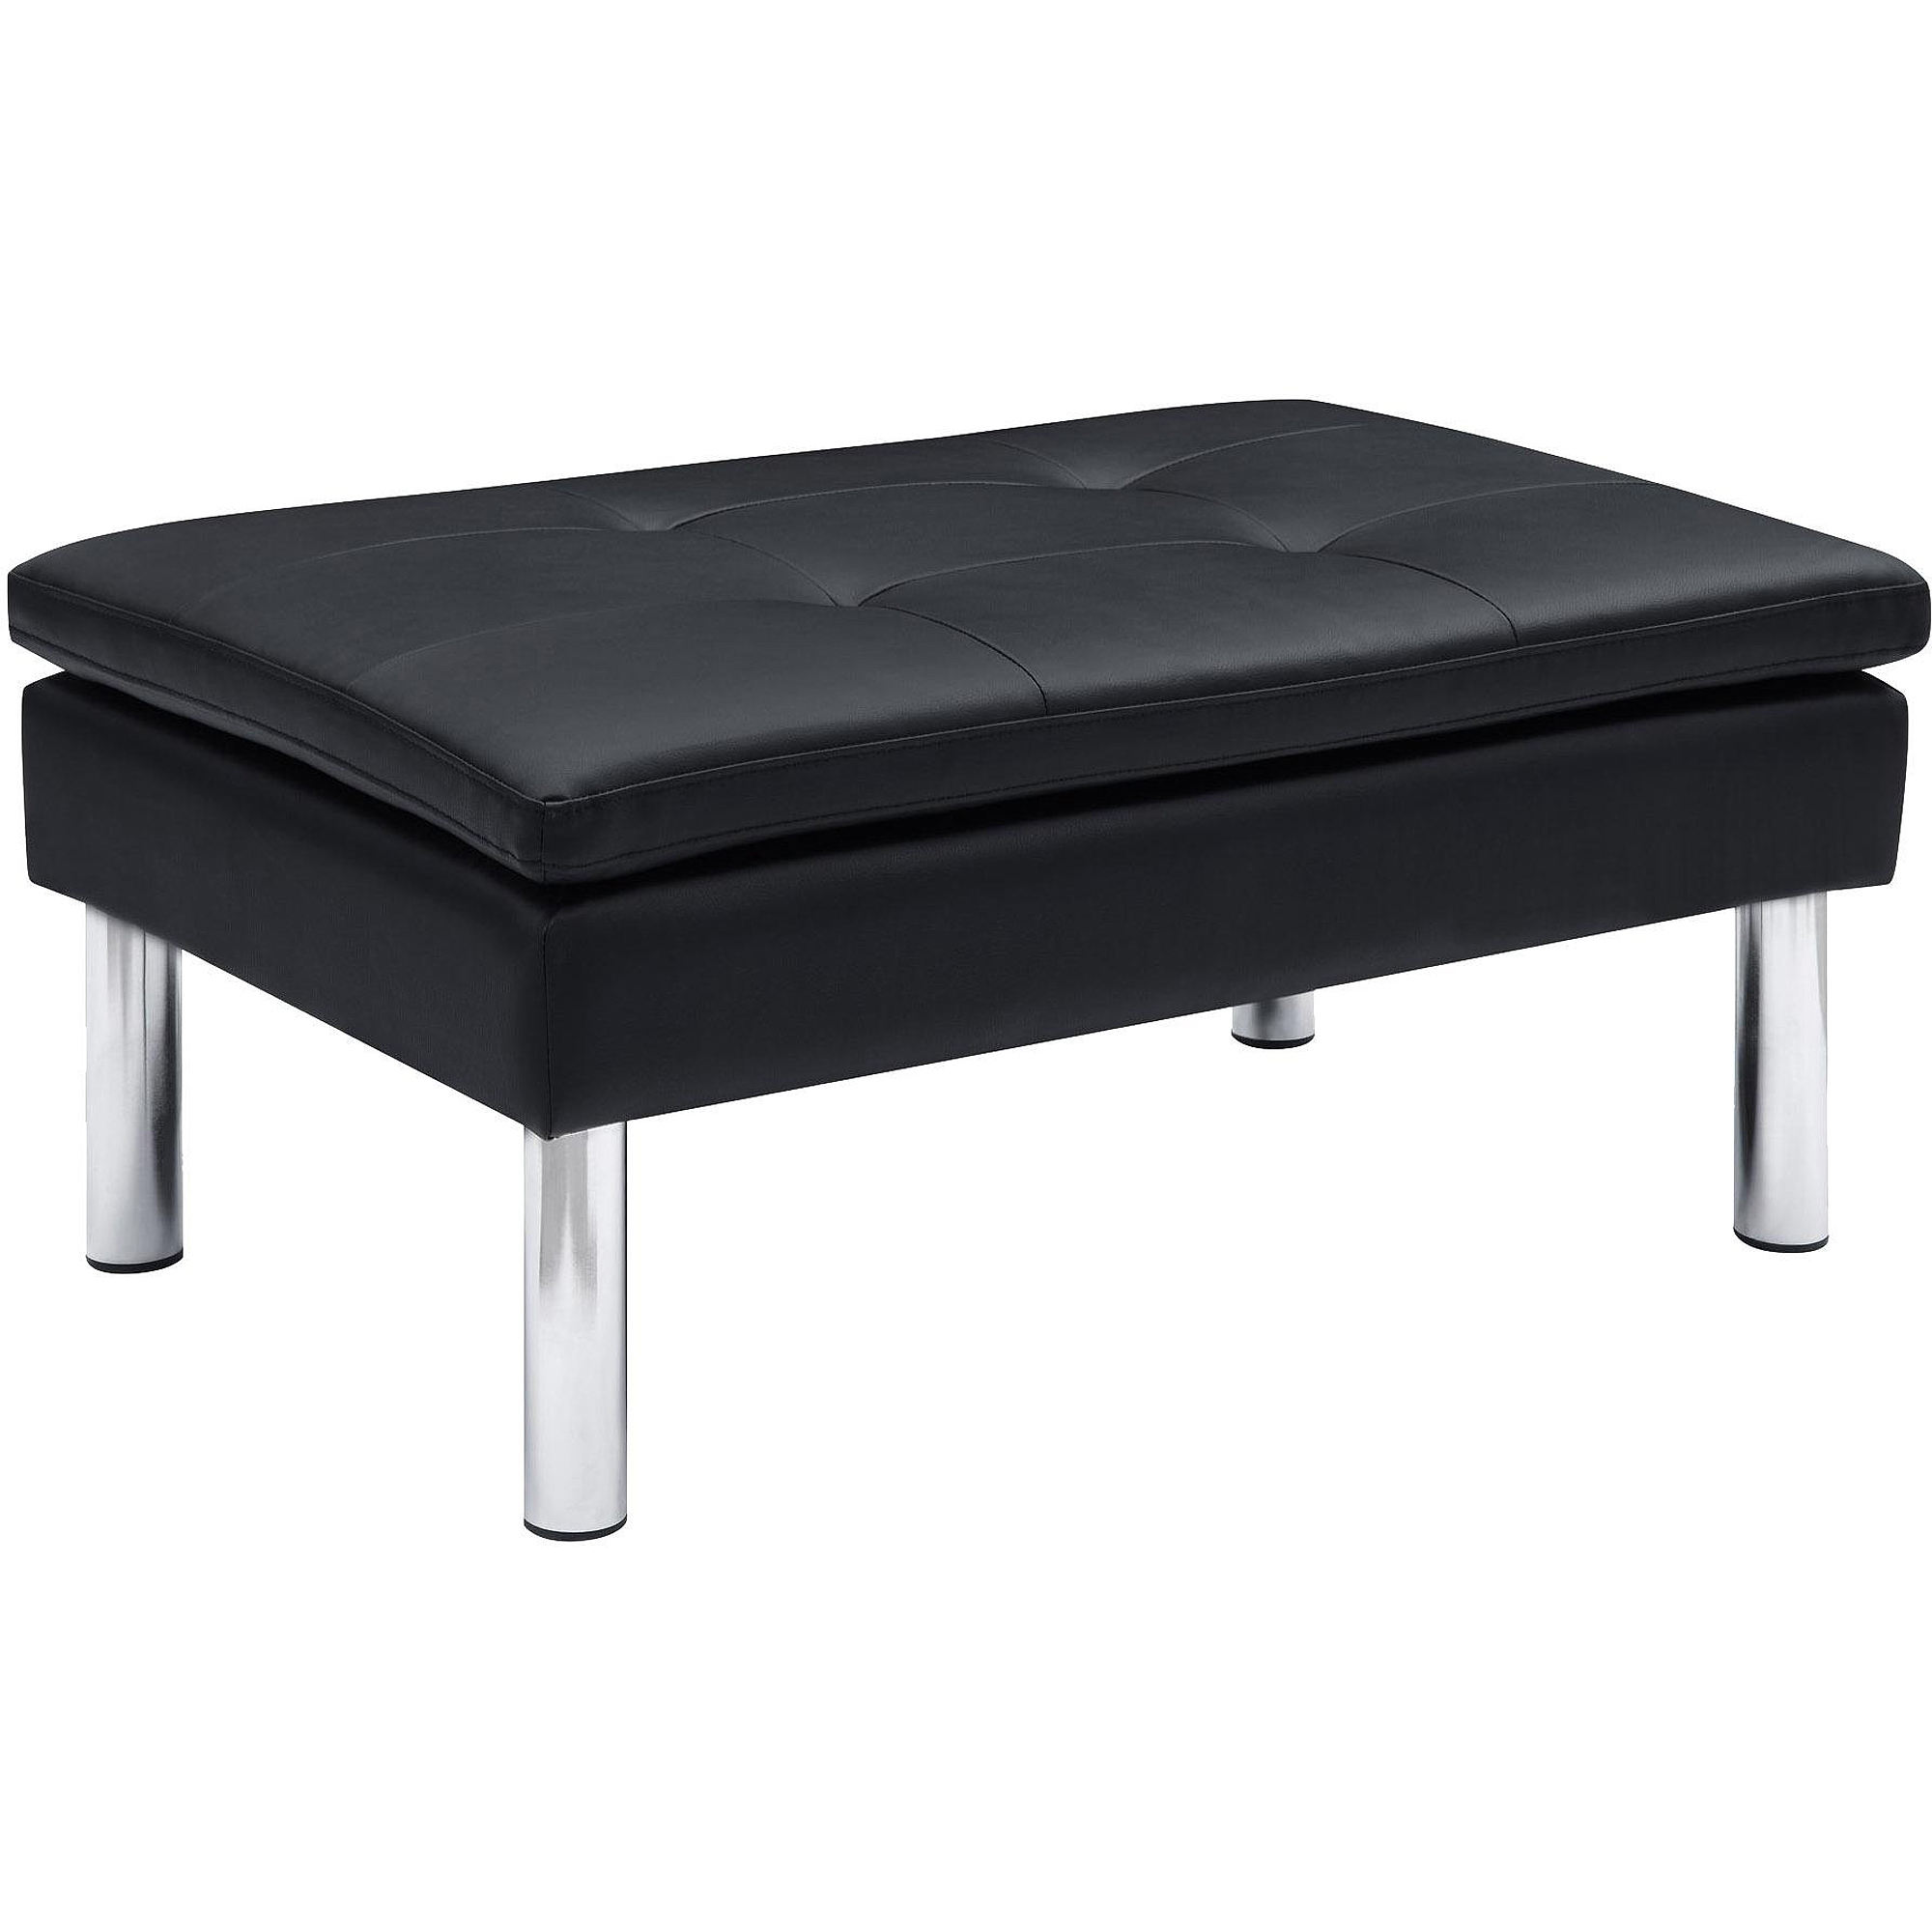 DHP Chelsea Black Faux Leather Ottoman by Dorel Home Products